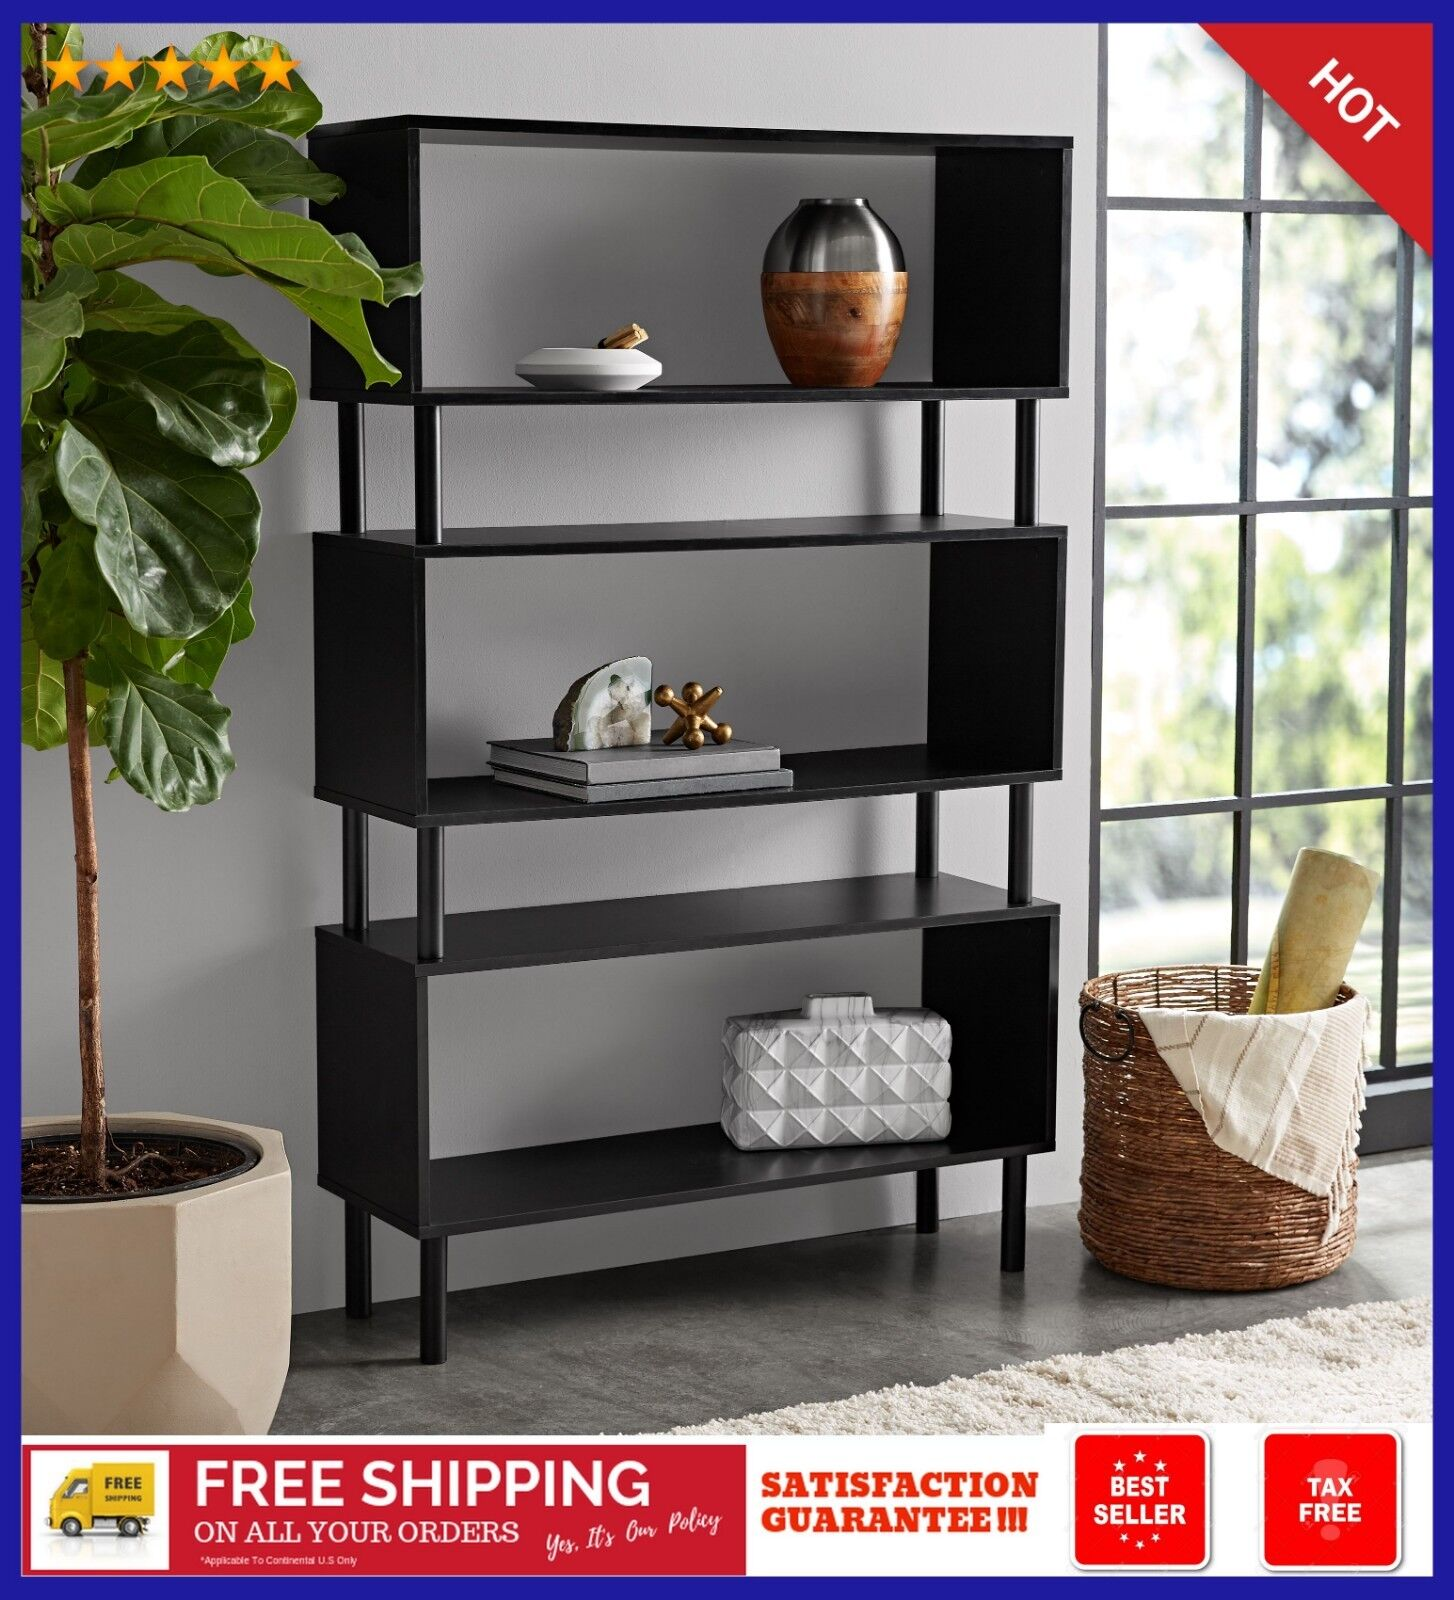 Details About Tall Bookcase Cubby Large Open Bookshelf Modern Cube 8 Shelf Display Book New